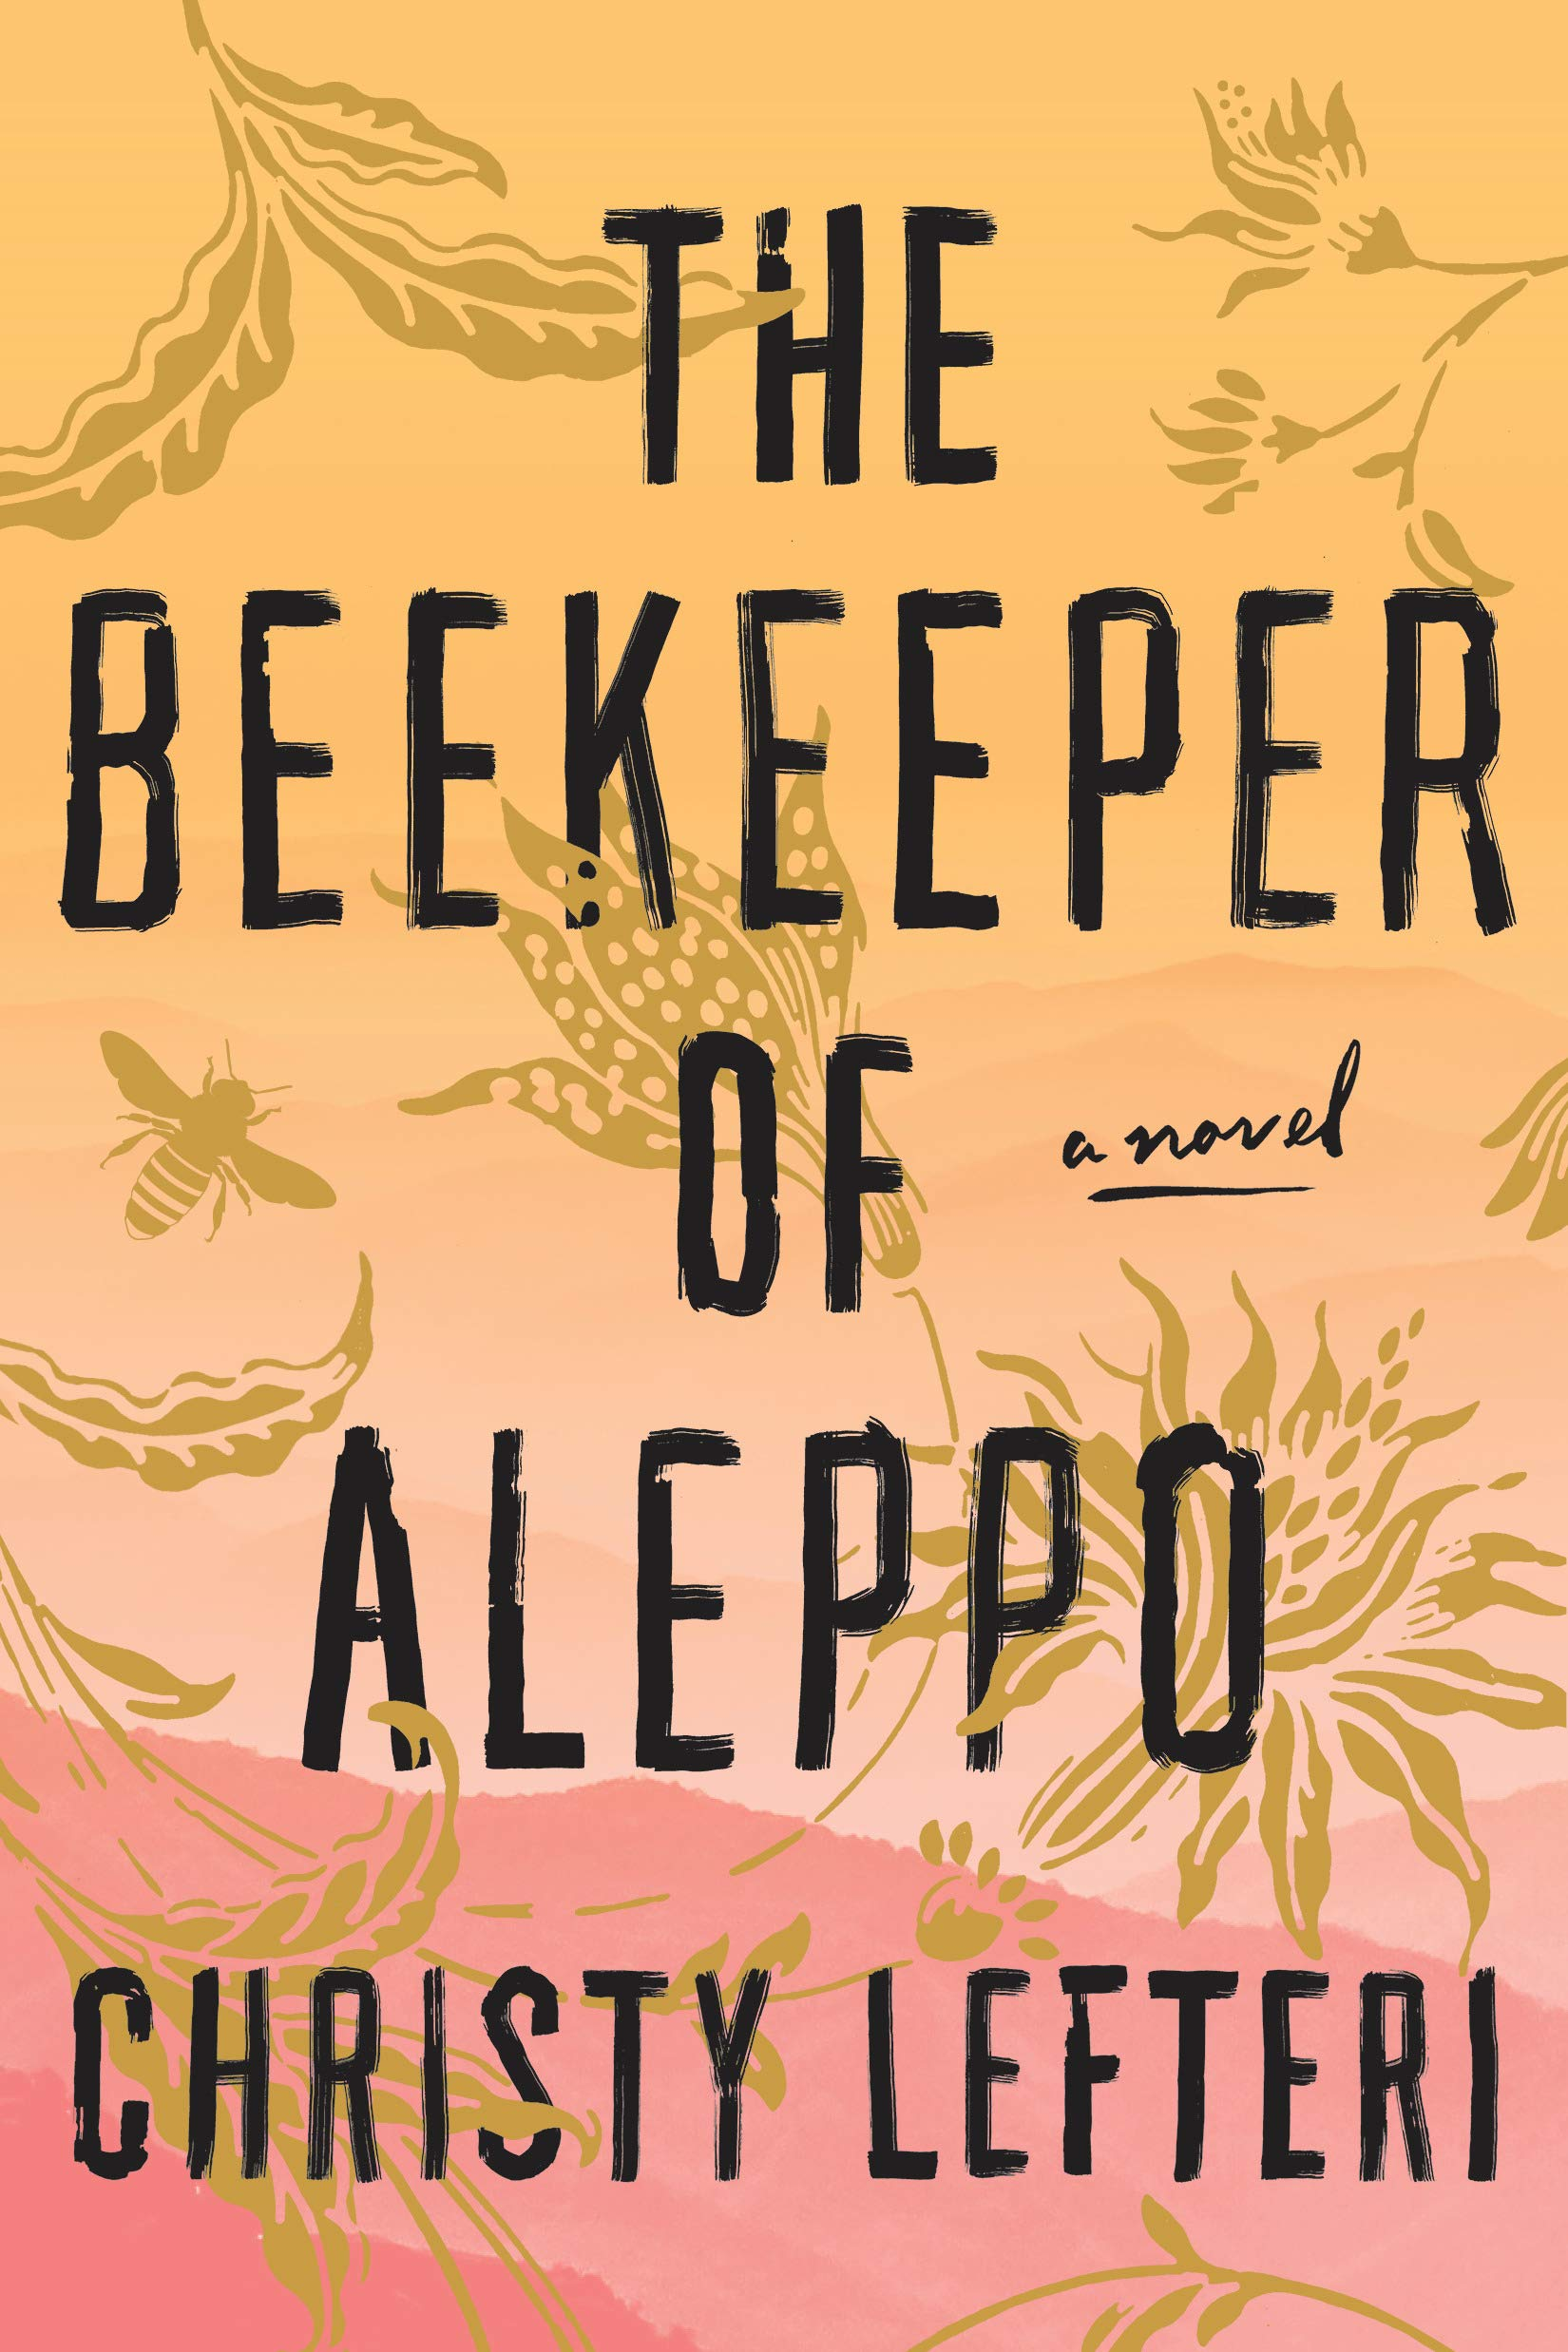 The Beekeeper of Aleppo: A Novel by Ballantine Books